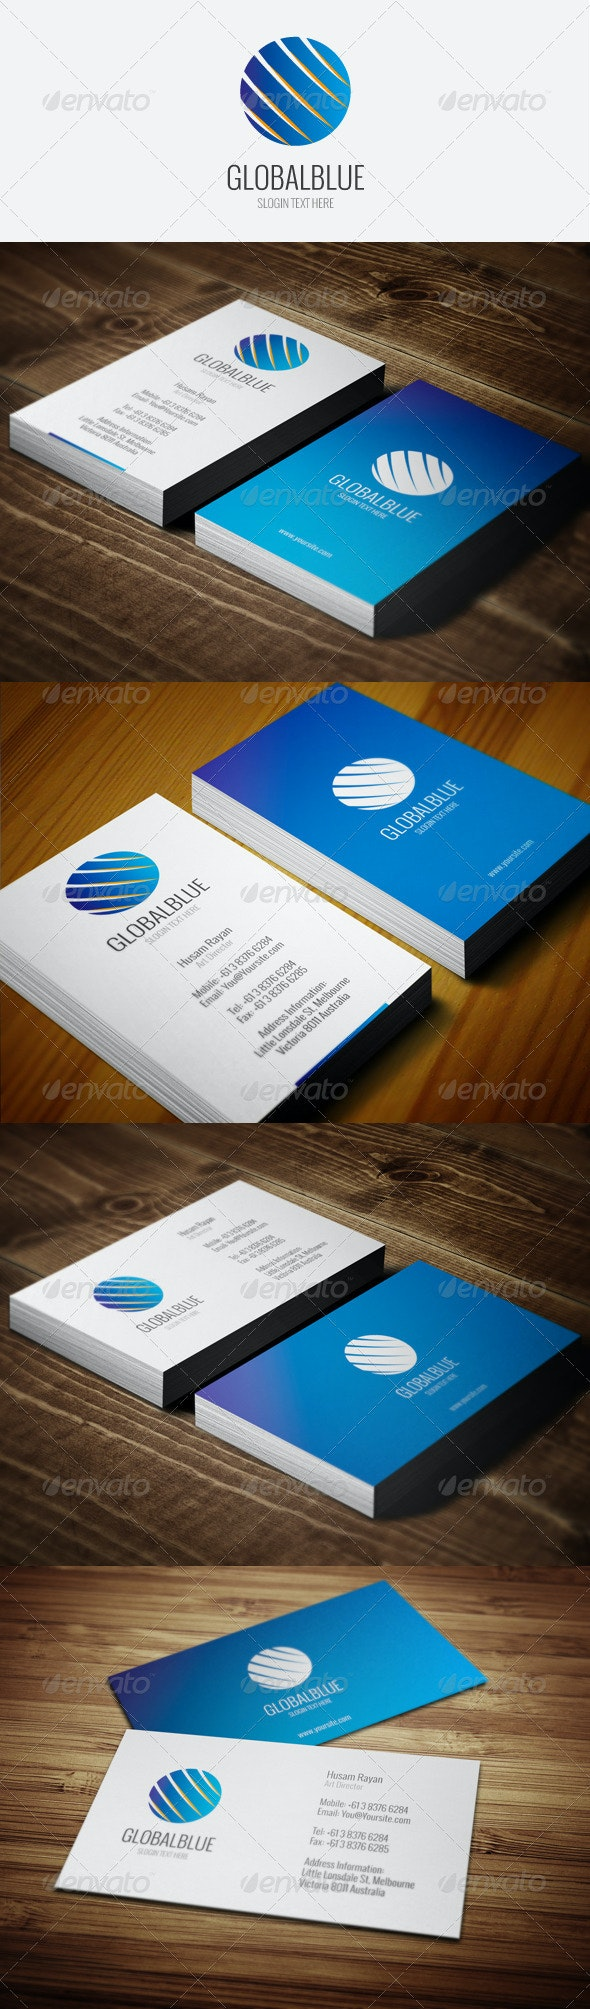 GlobalBlue Business Cards - Corporate Business Cards